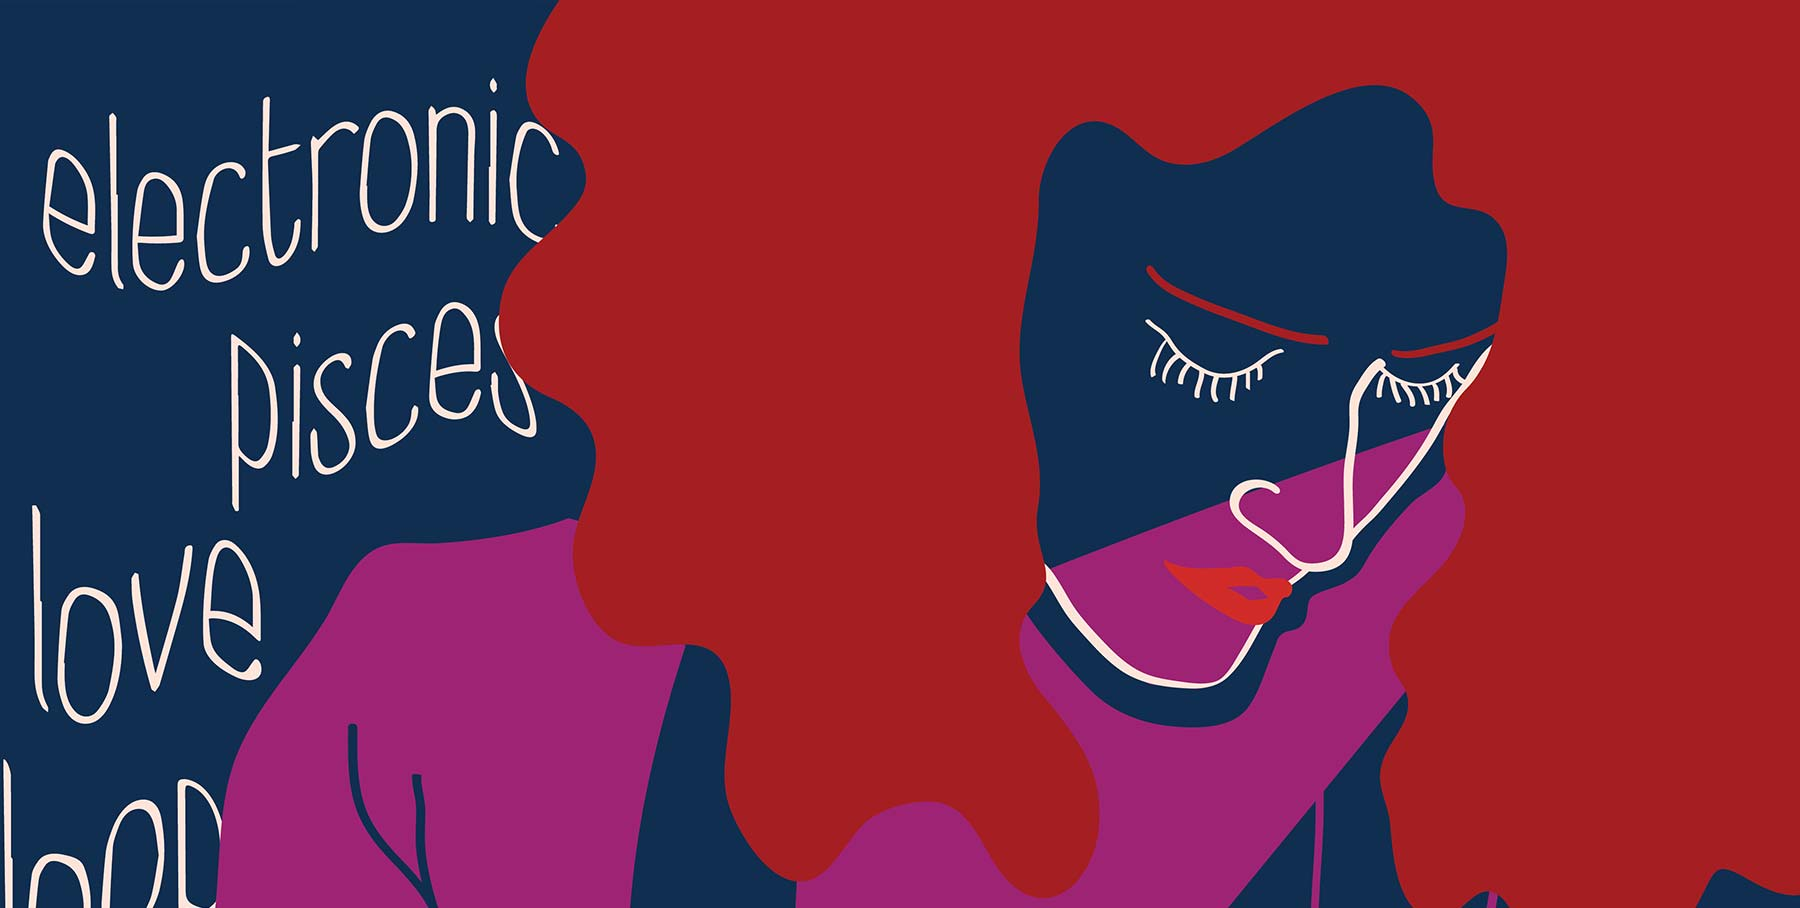 Details. Femme musician playing the piano. Several typographic words fill the background.